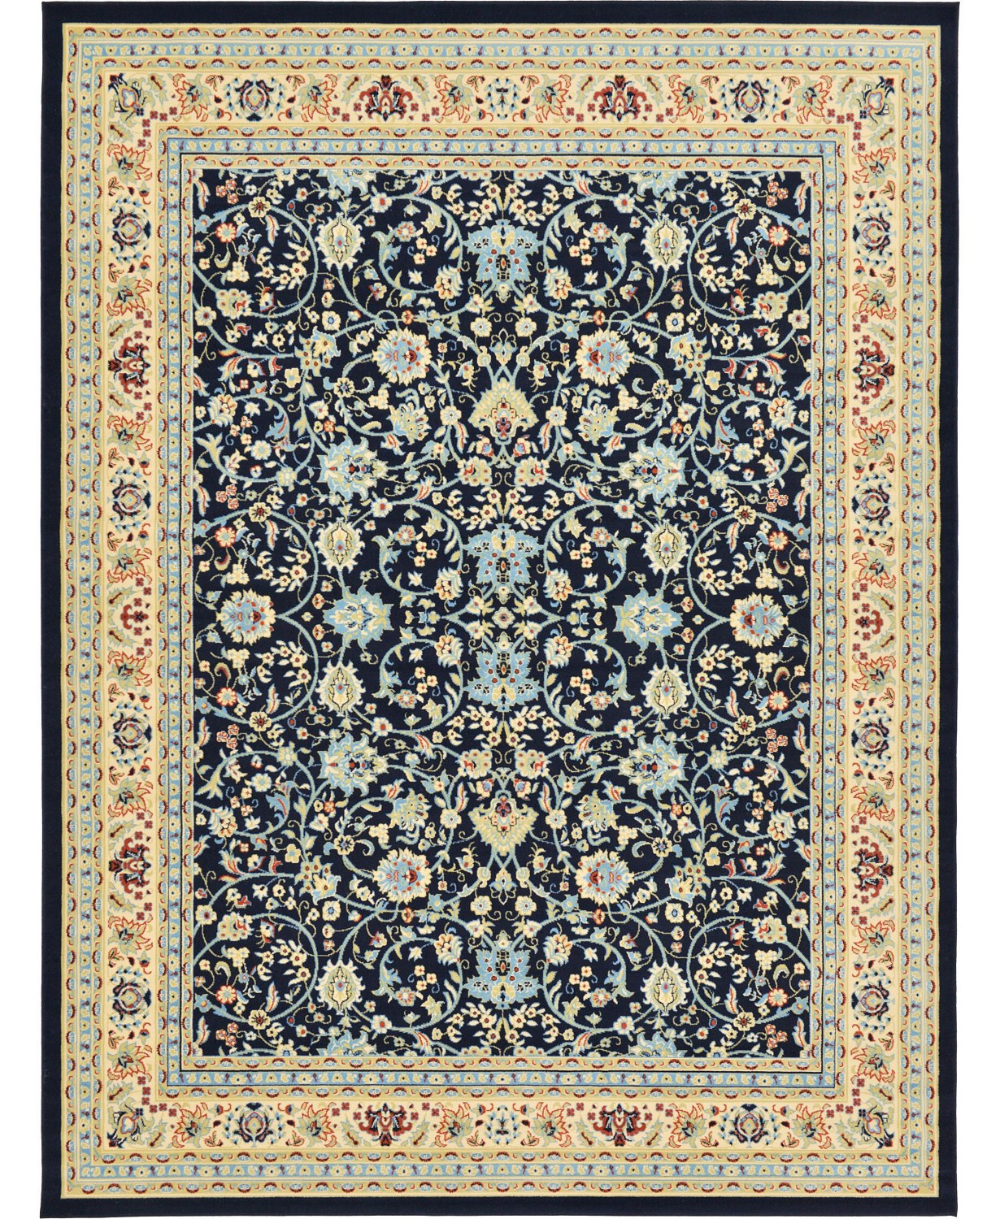 Bridgeport Home Arnav Arn1 Navy Blue 9 10 In 2020 Area Rugs Furniture For Small Spaces Animals For Kids